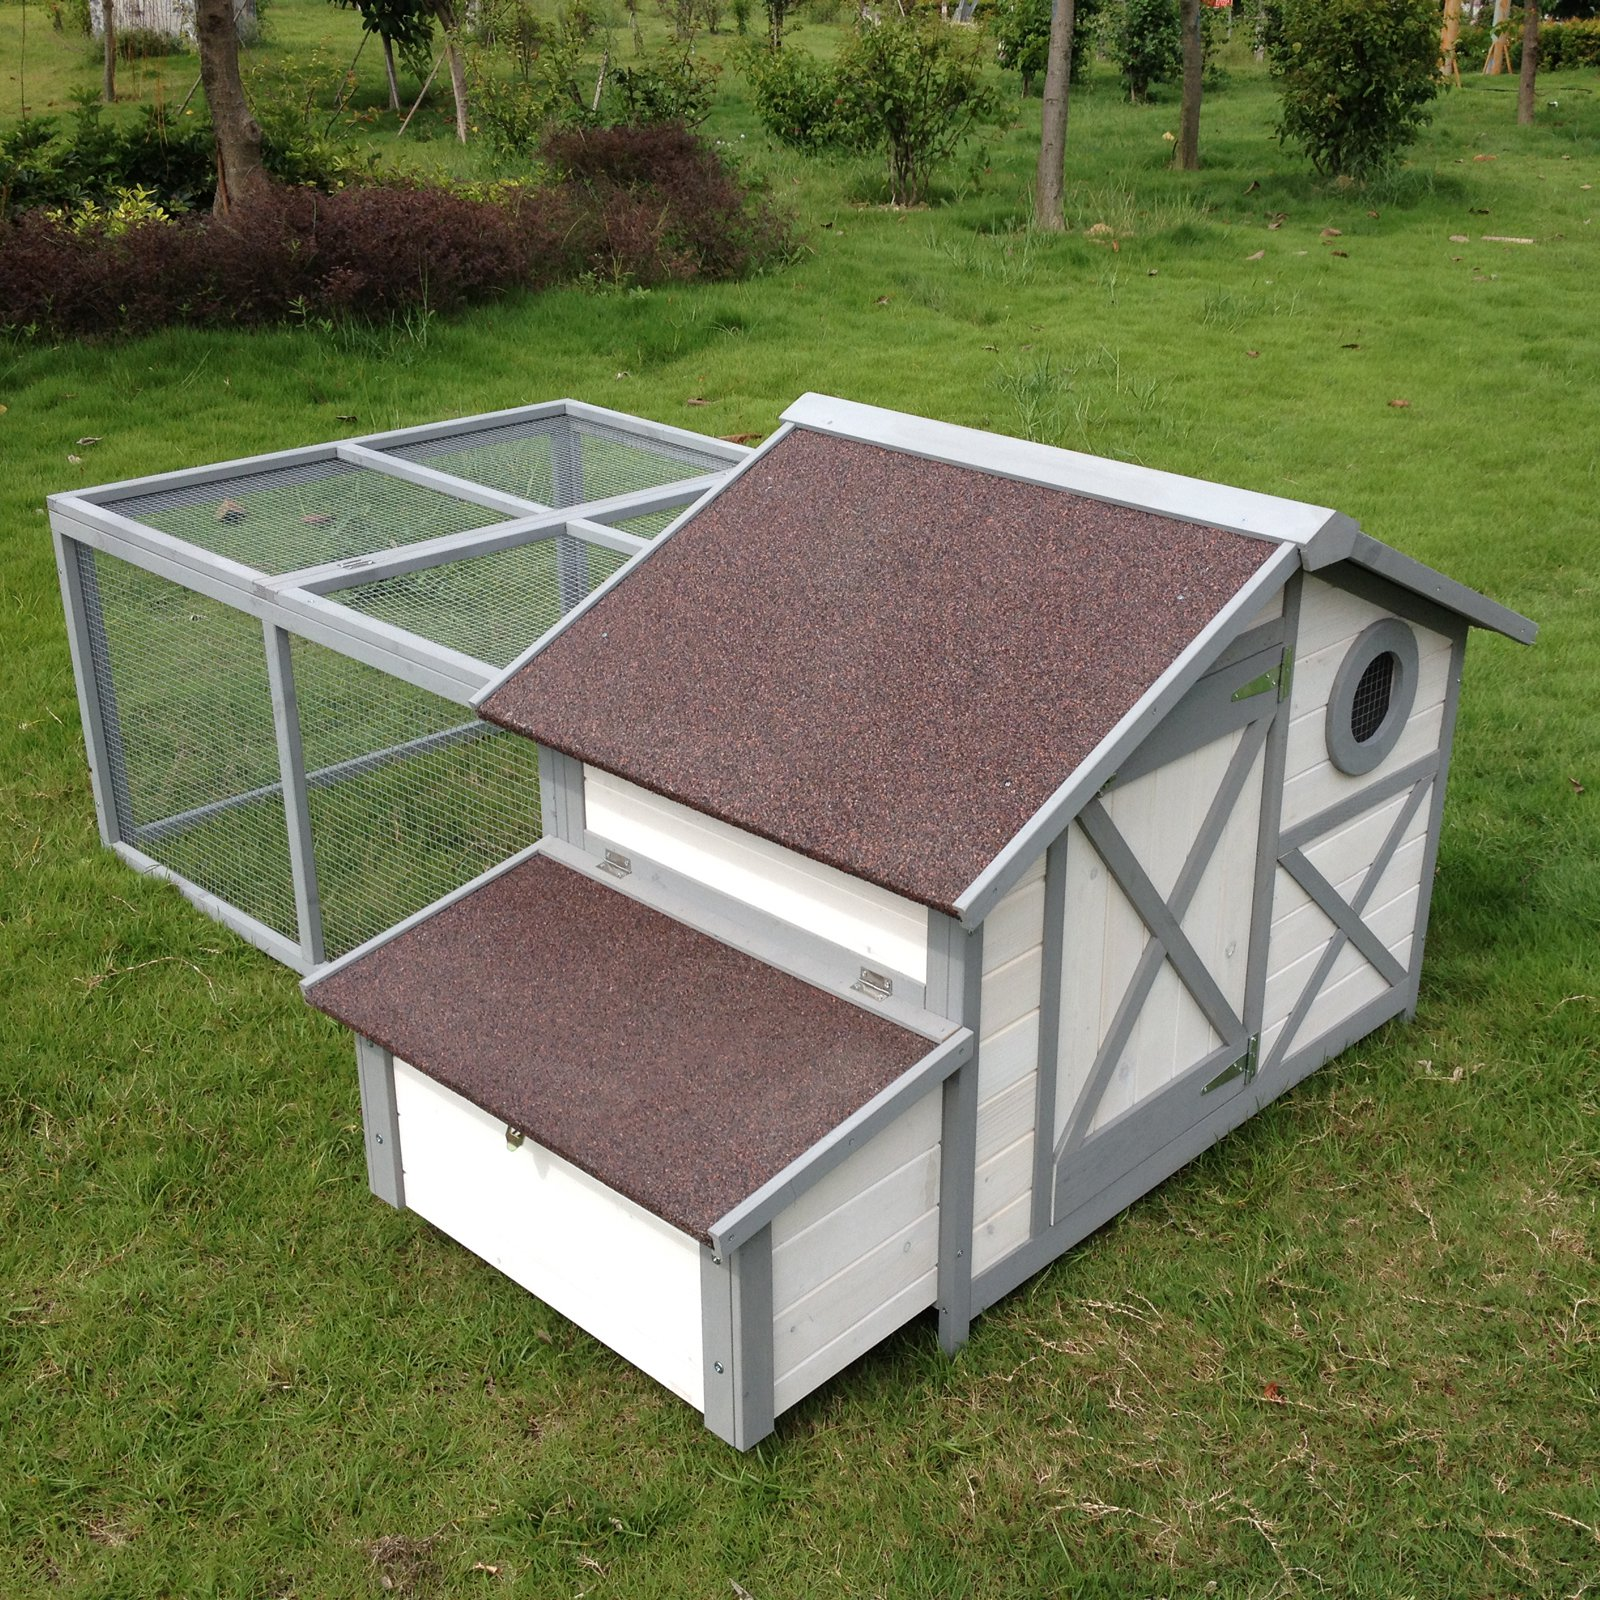 Boomer & George Cape Bay Dual-Use Chicken Coop Rabbit Hutch by